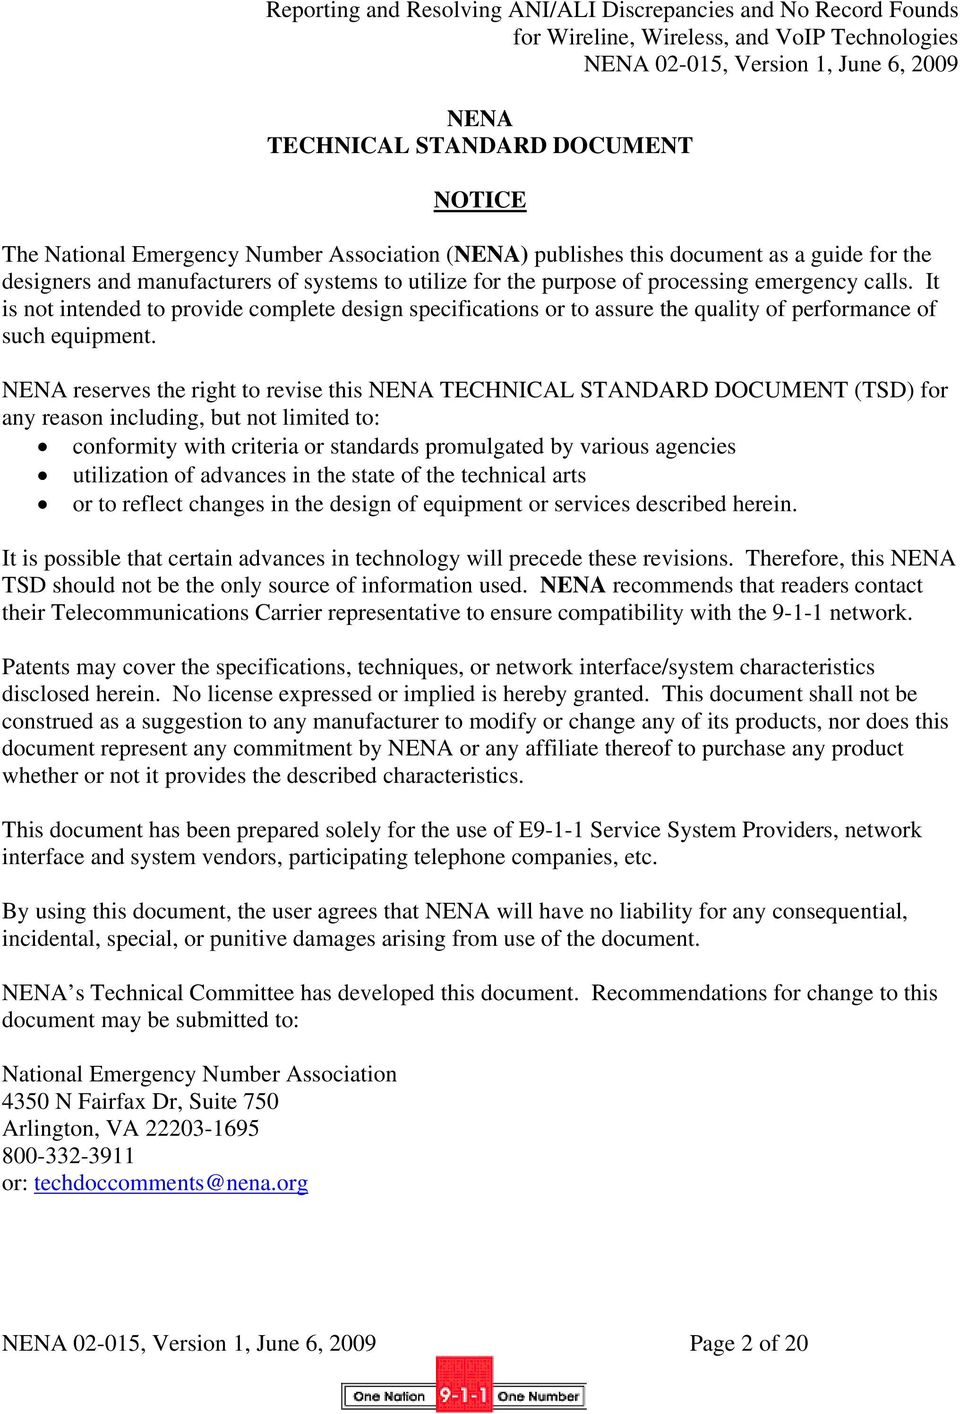 NENA reserves the right to revise this NENA TECHNICAL STANDARD DOCUMENT (TSD) for any reason including, but not limited to: conformity with criteria or standards promulgated by various agencies